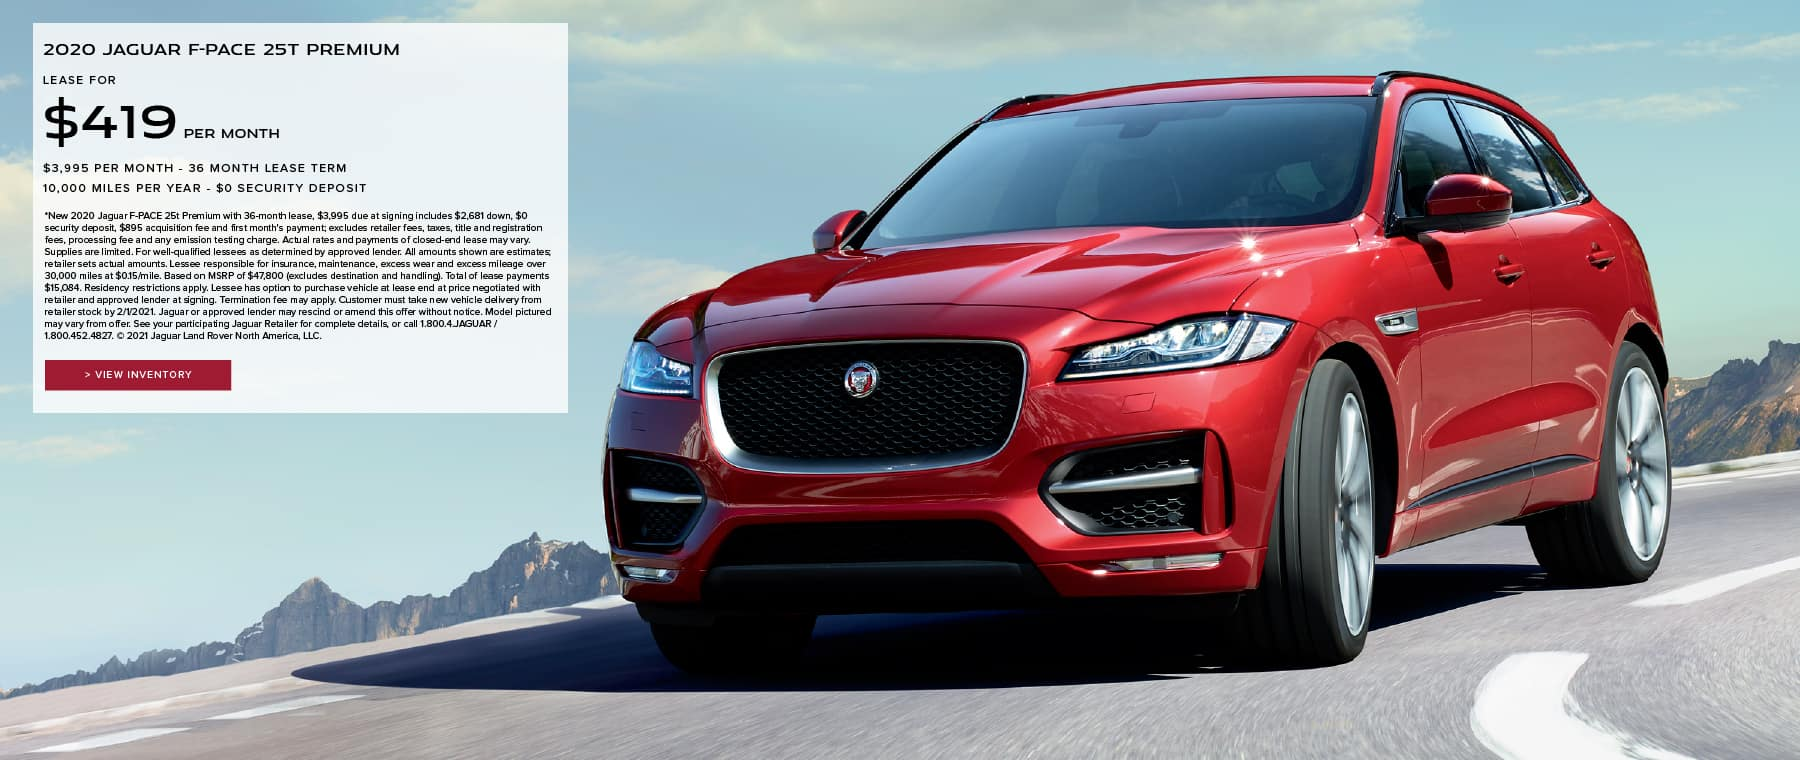 2020 JAGUAR F-PACE 25T PREMIUM. $419 PER MONTH. 36 MONTH LEASE TERM. $3,995 CASH DUE AT SIGNING. $0 SECURITY DEPOSIT. 10,000 MILES PER YEAR. EXCLUDES RETAILER FEES, TAXES, TITLE AND REGISTRATION FEES, PROCESSING FEE AND ANY EMISSION TESTING CHARGE. OFFER ENDS 2/1/2021. VIEW INVENTORY. RED JAGUAR F-PACE DRIVING THROUGH MOUNTAIN RANGE.